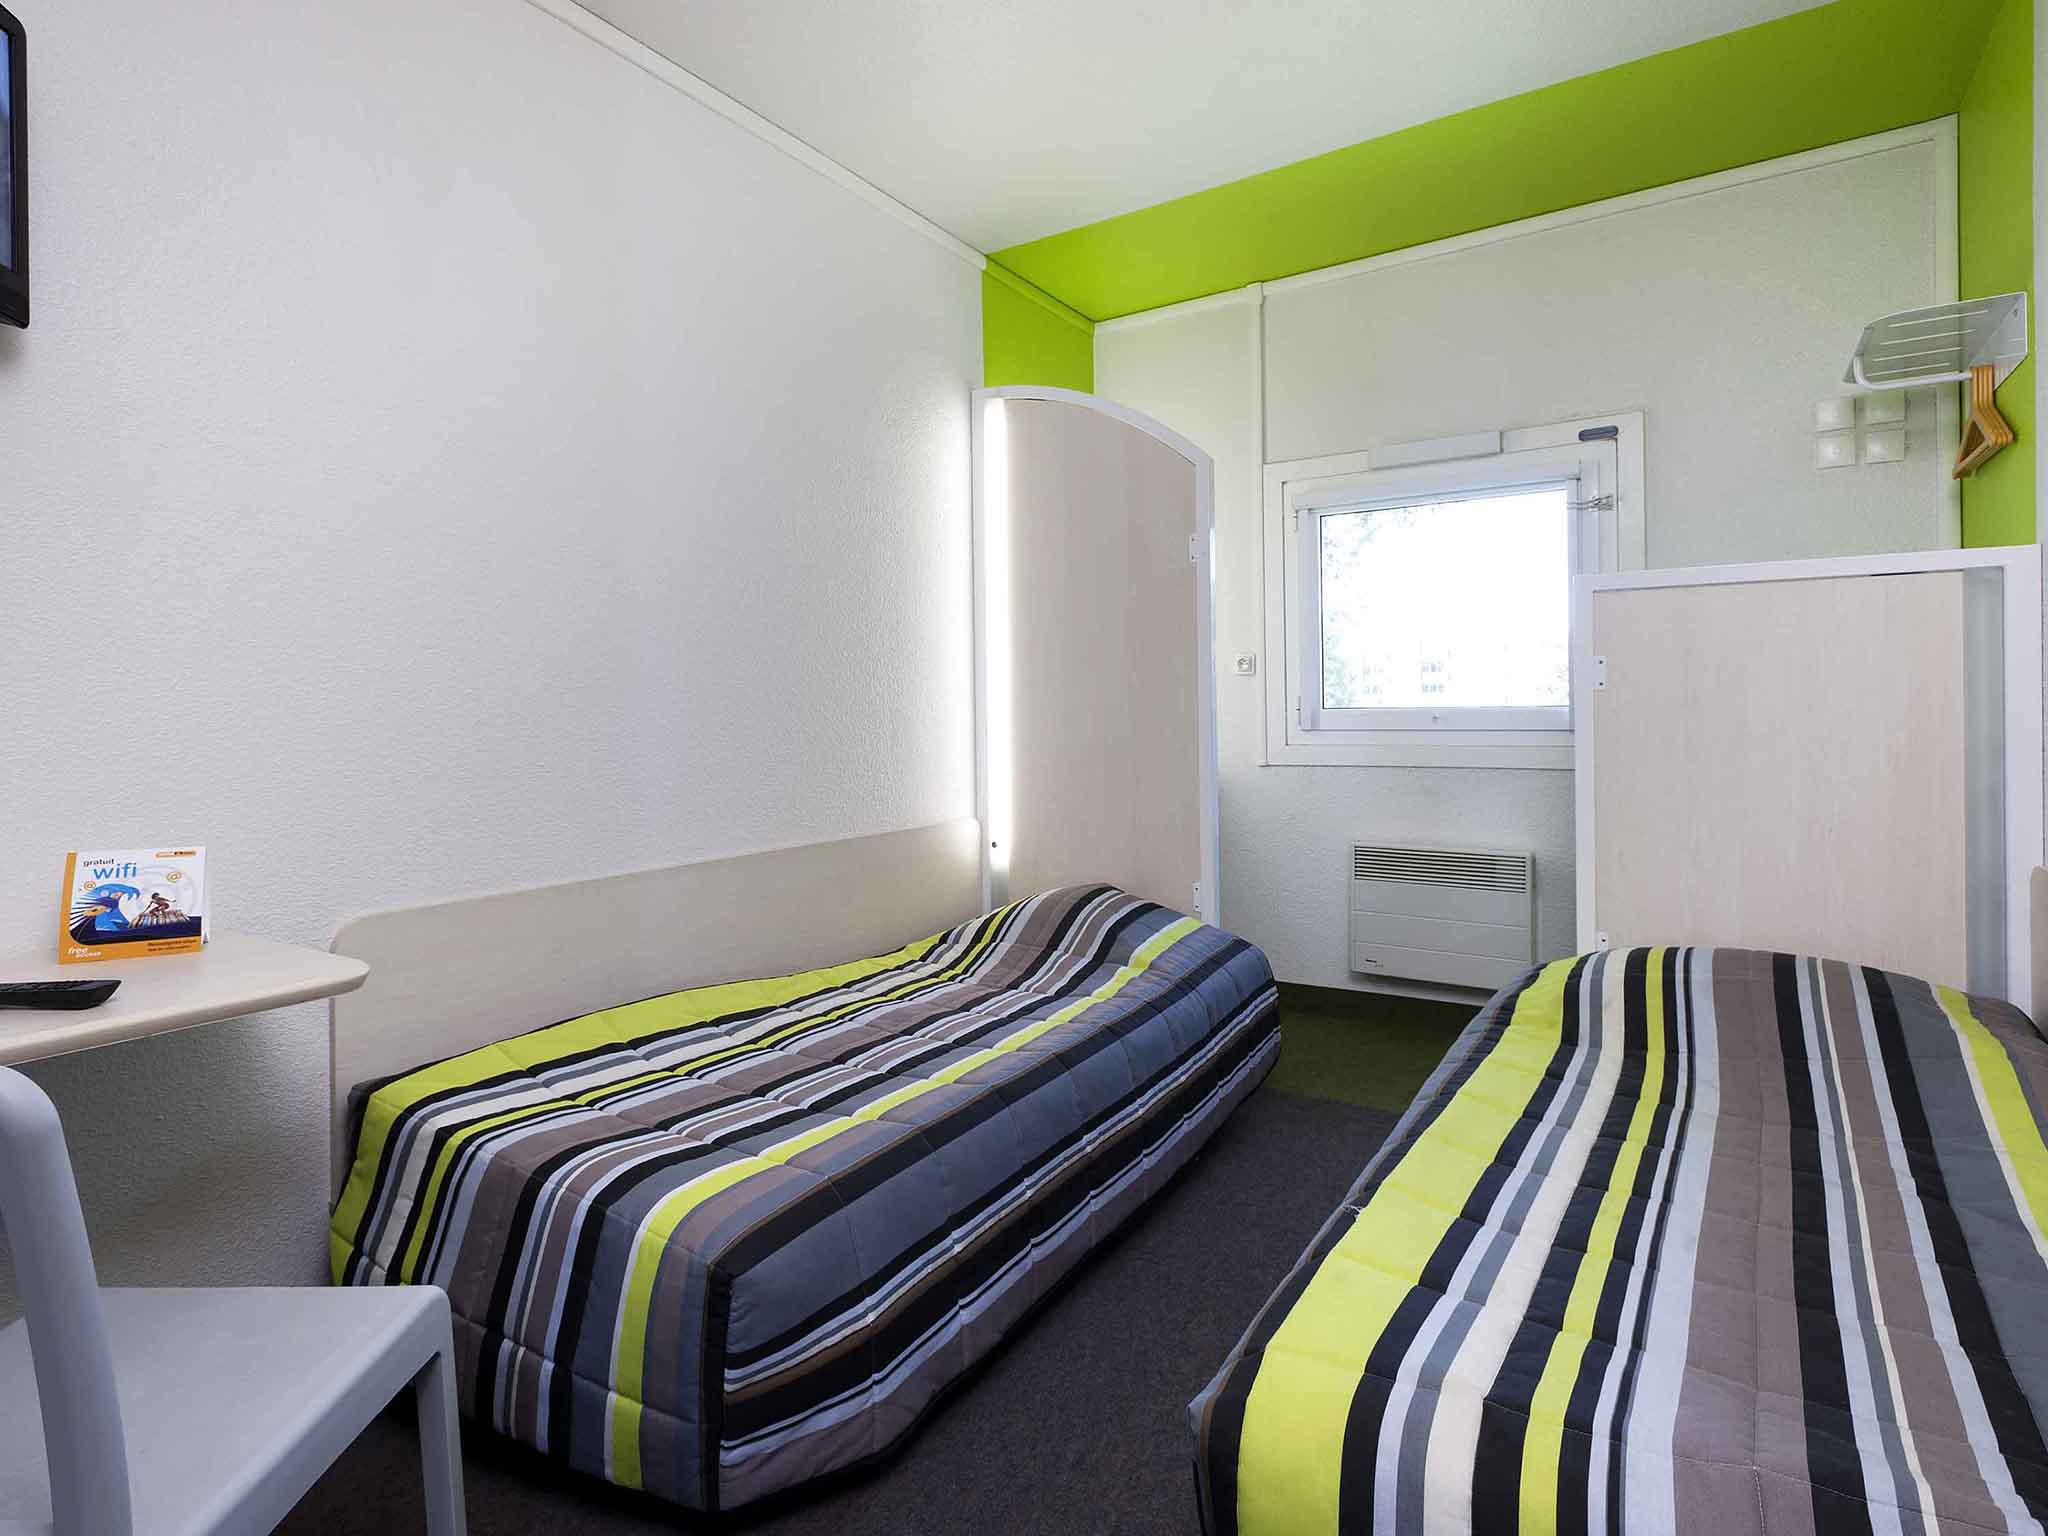 Hotel - hotelF1 Epinal Nord